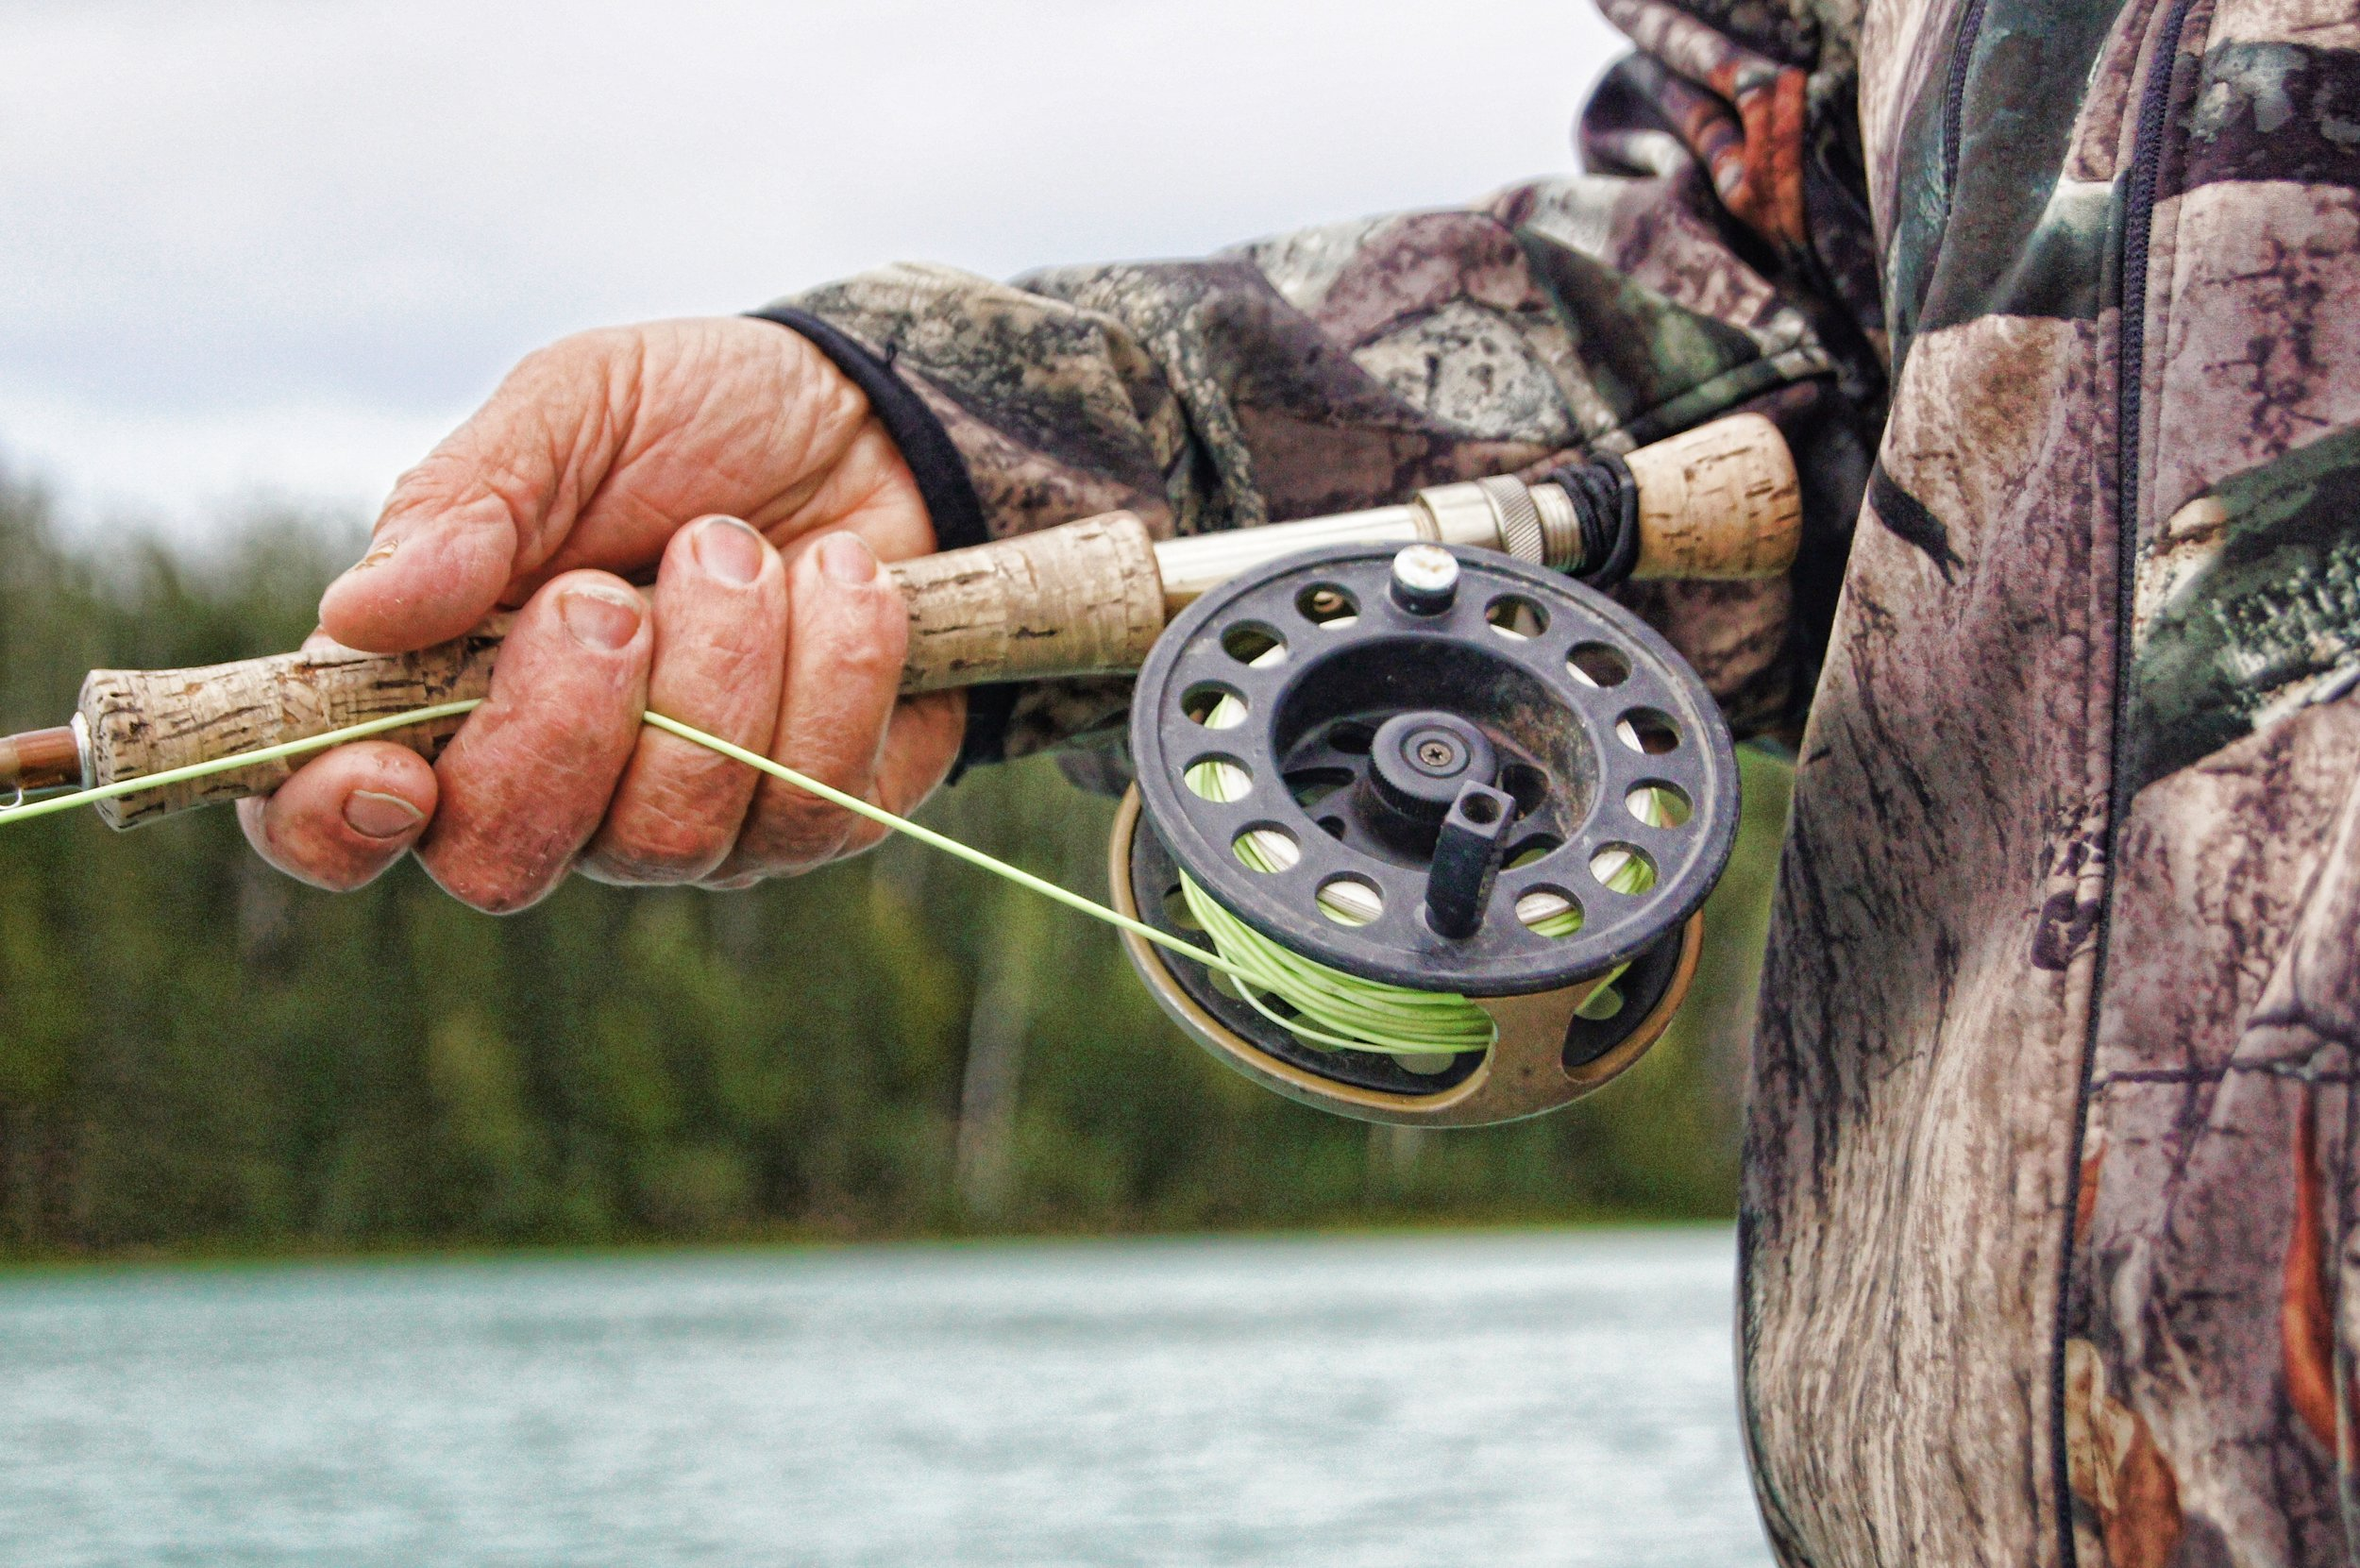 Joe Cantrell Outfitting - Joe Cantrell and his wife Suellen have been operating a full time fishing operation on the Clark Fork River since 1995. The have a modern lodge on the Clark Fork with special room rates for fisherman staying with them.